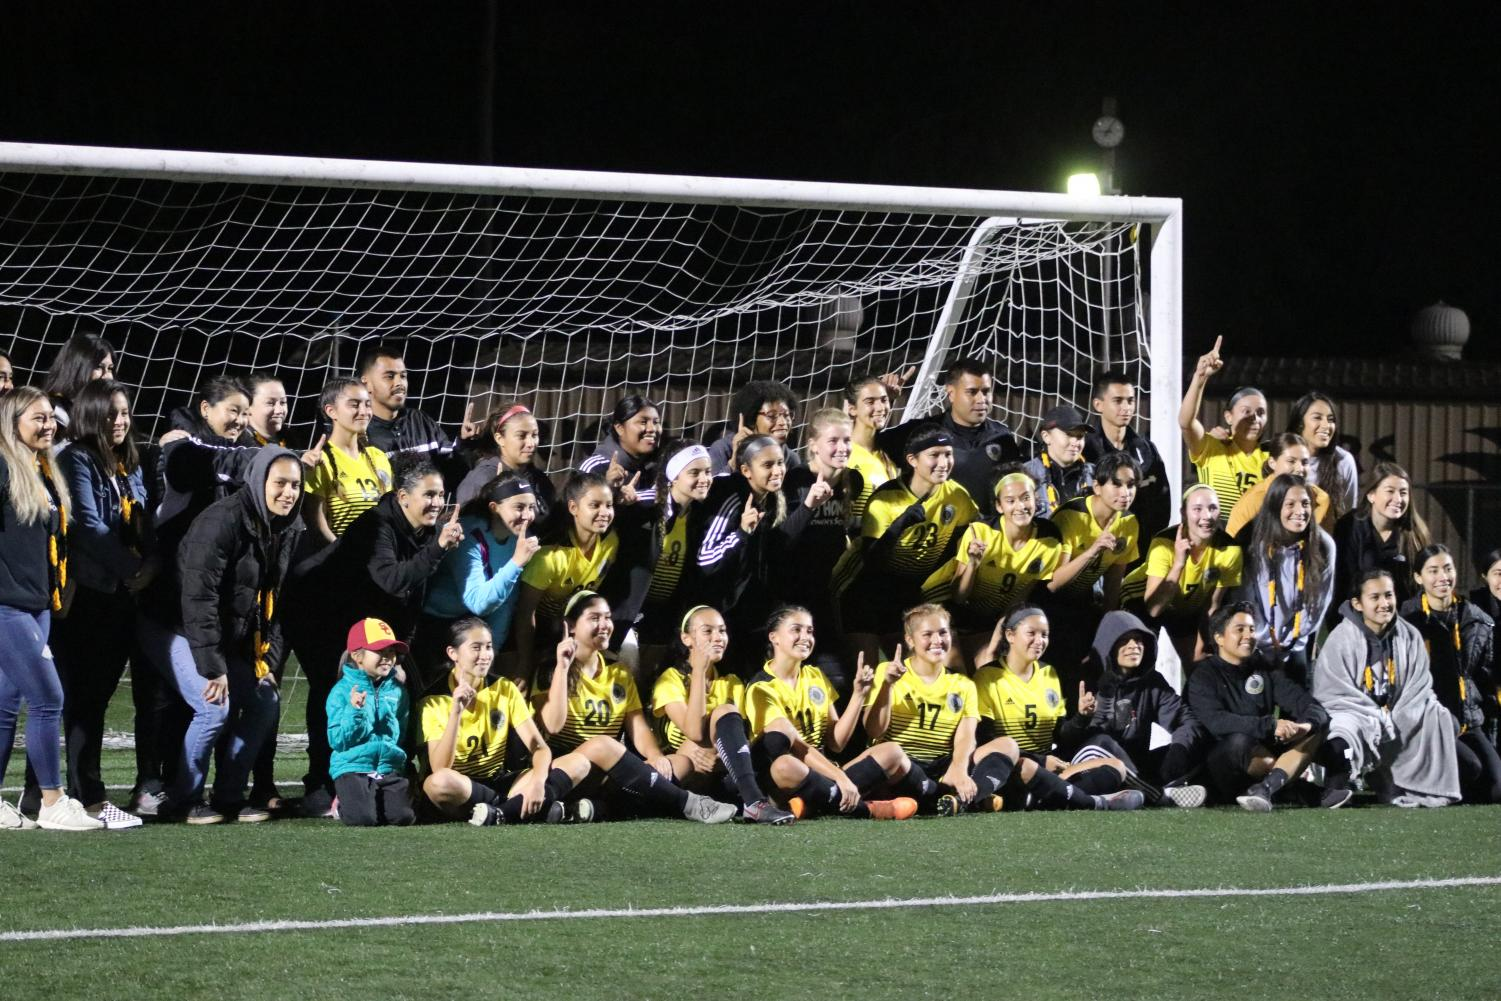 Rio Hondo women's soccer team celebrating their eighth conference victory. The Lady Roadrunners captured its fifth conference championship over the past six seasons. Rio Hondo destroyed Pasadena City 5-0 on Friday, November. 15.